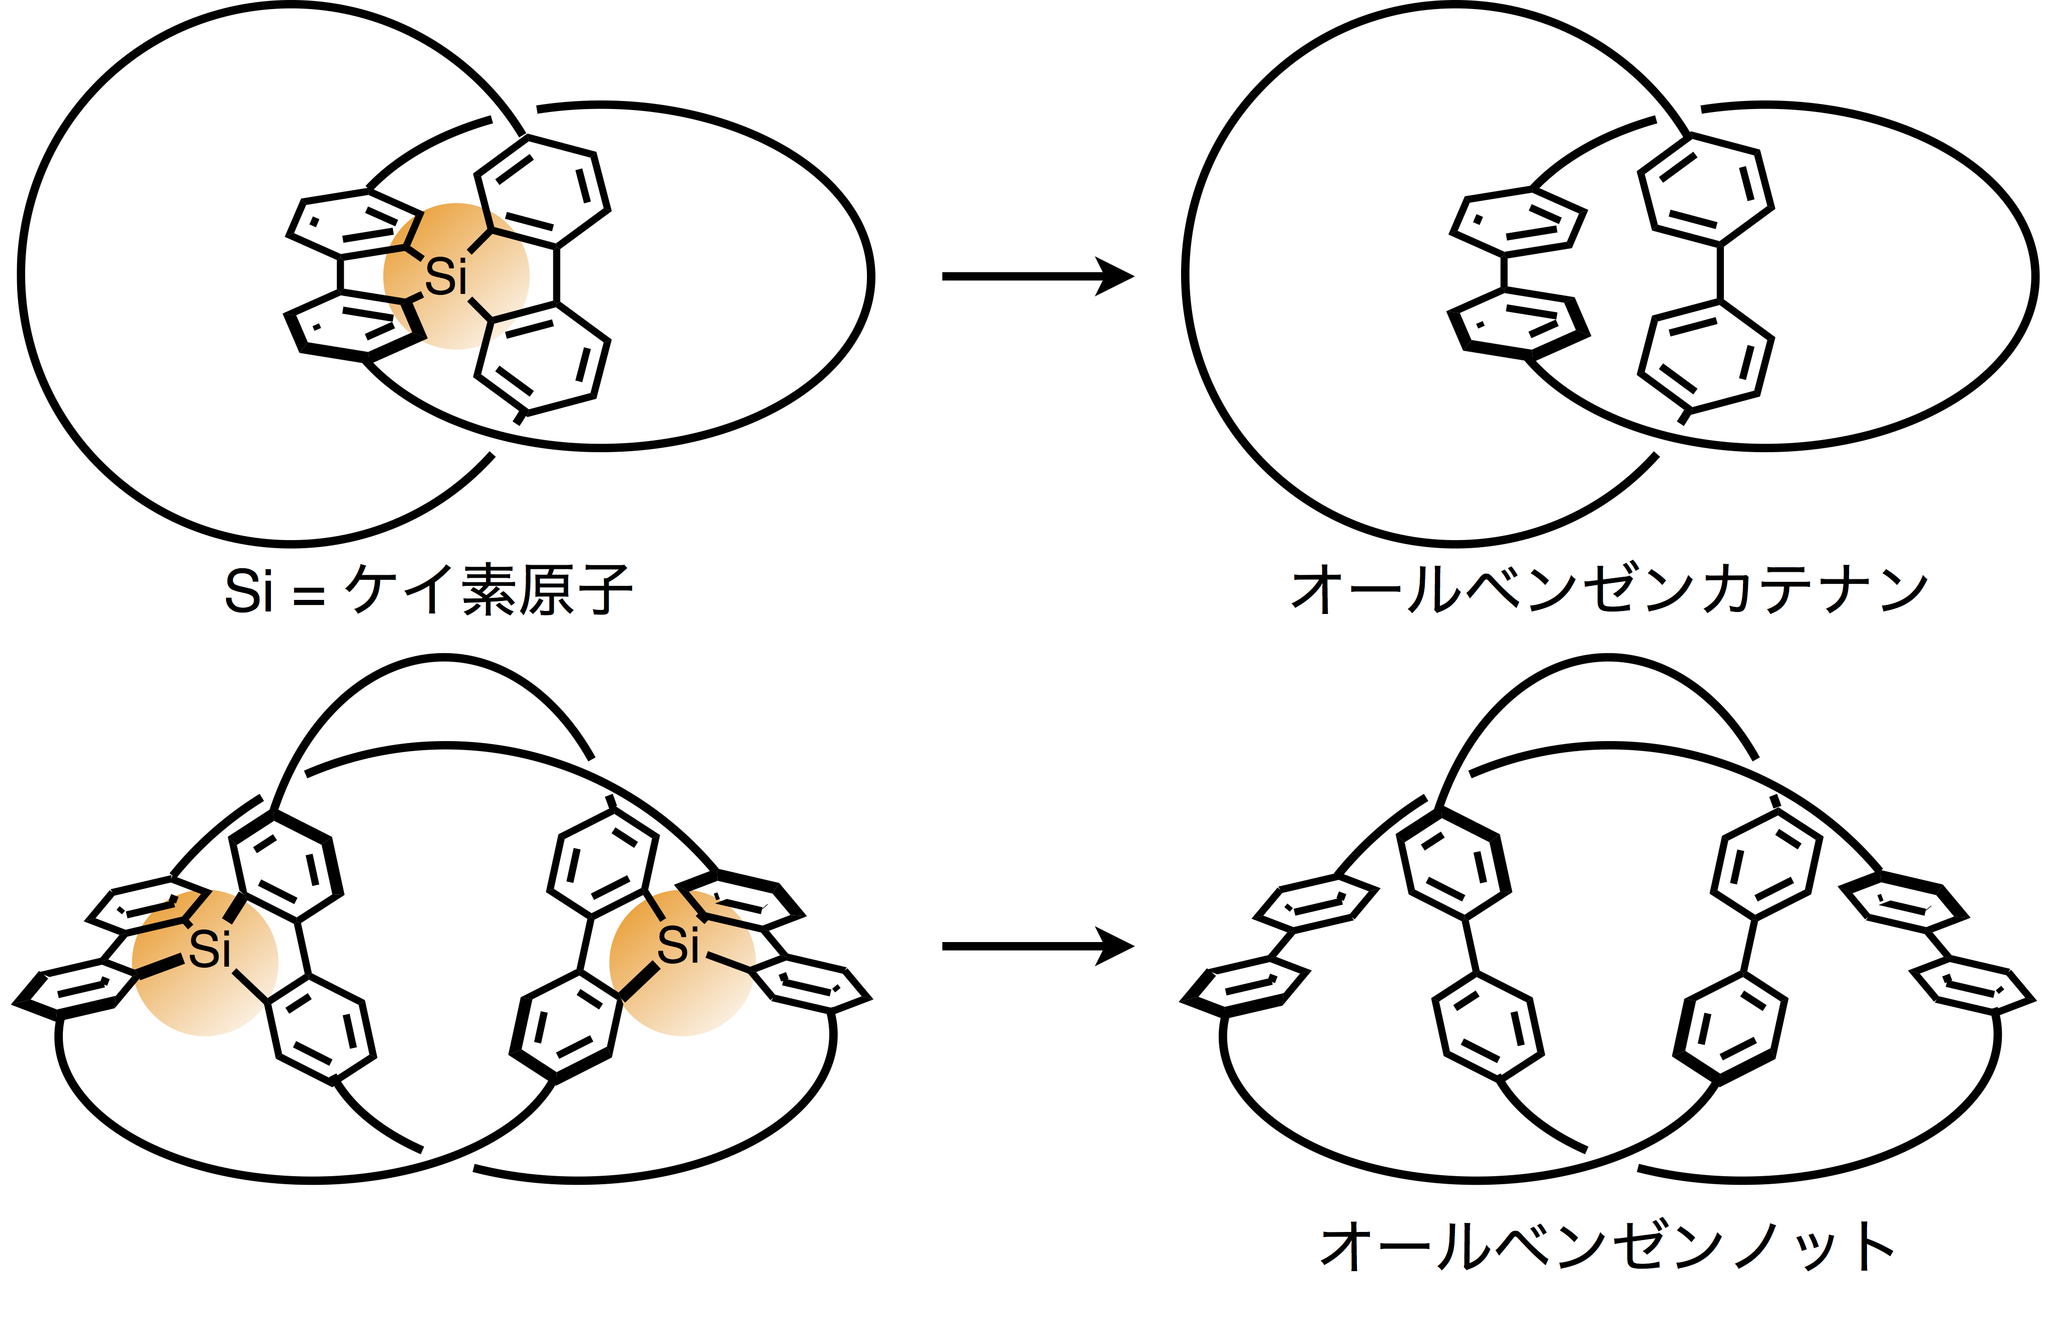 20190718ItamiScience009.png